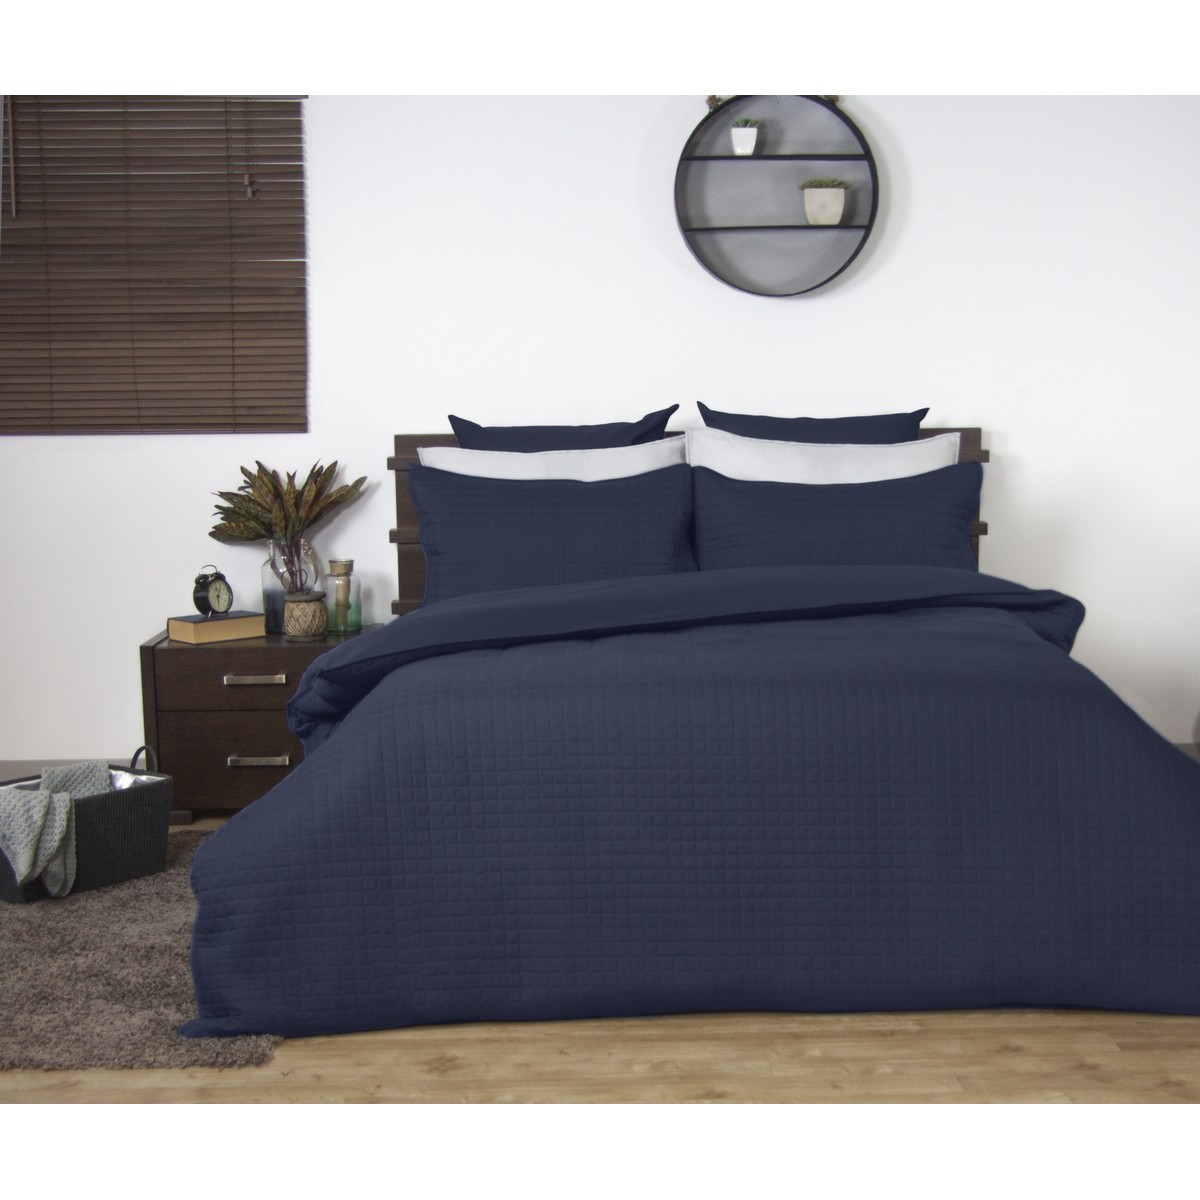 Ardor Boudoir Quilted Quilt Cover Set, Single, Navy